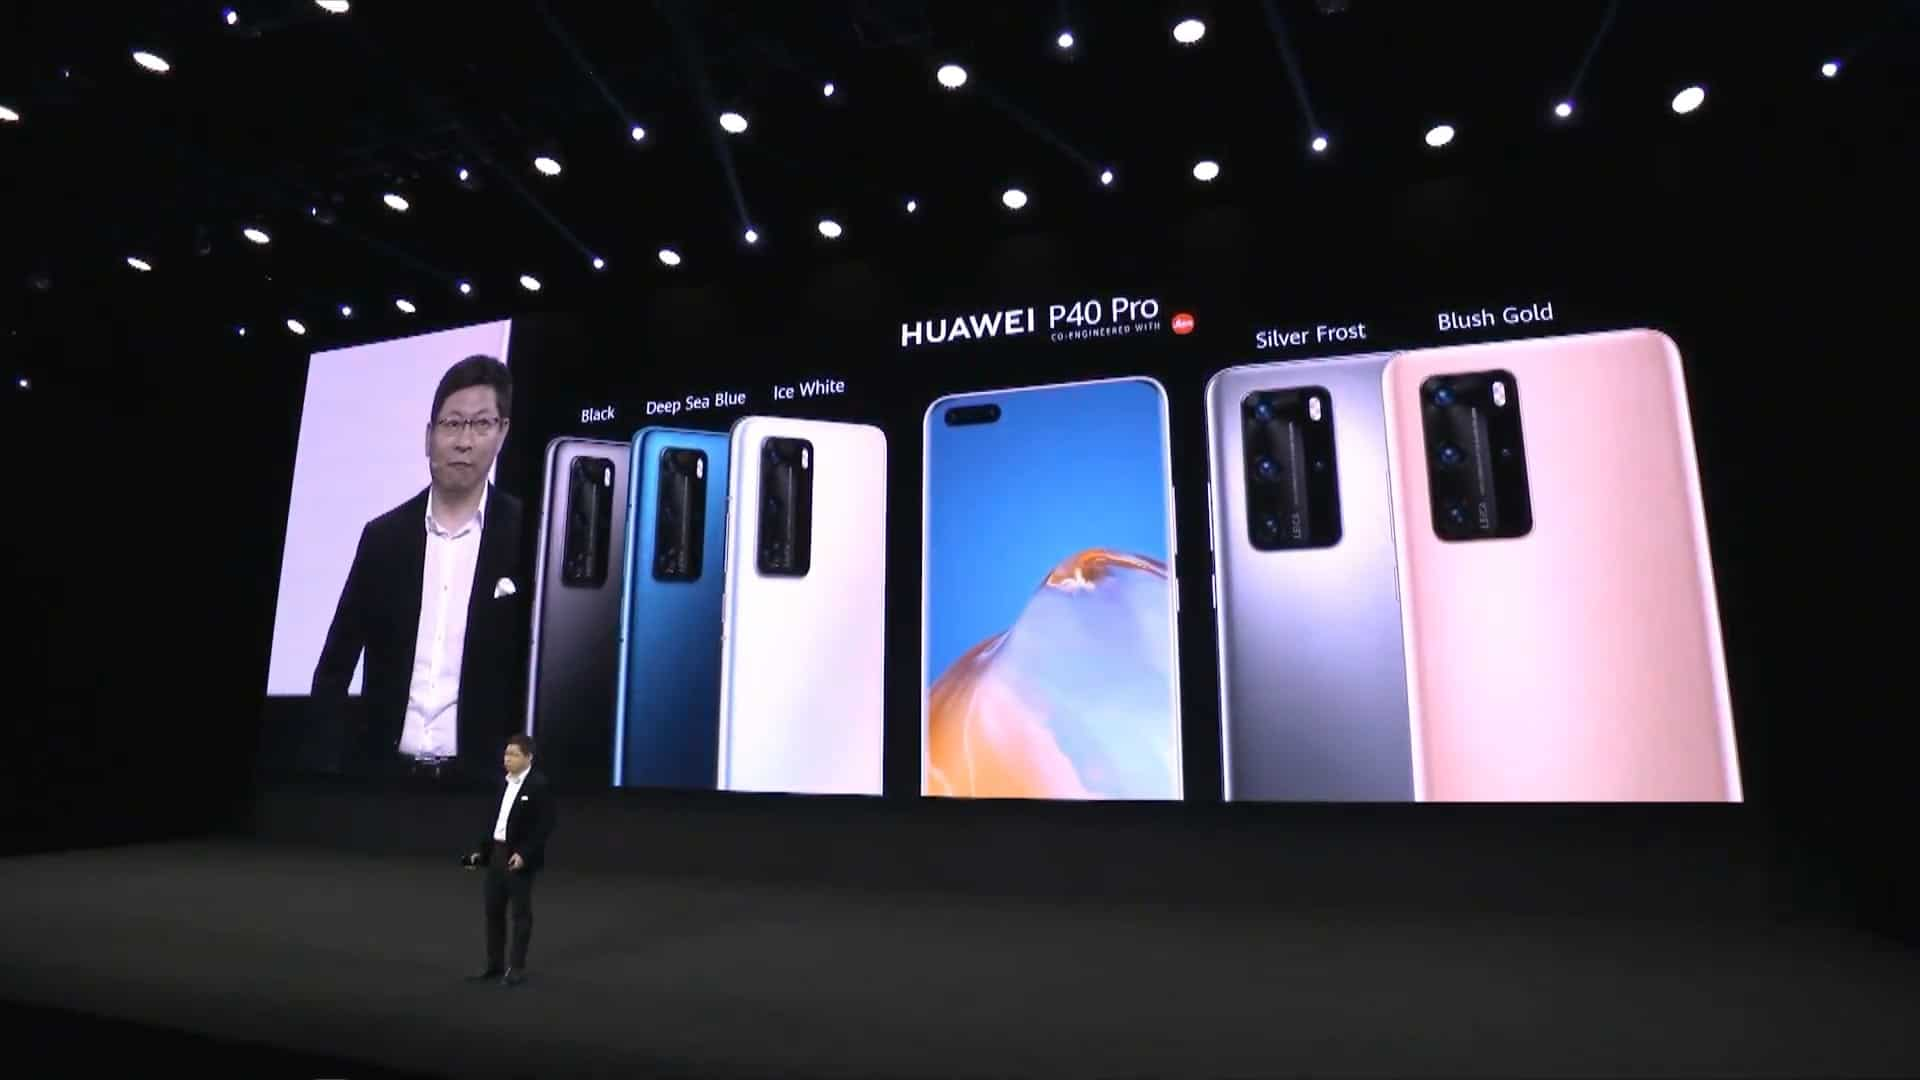 Huawei P40 series event image 3